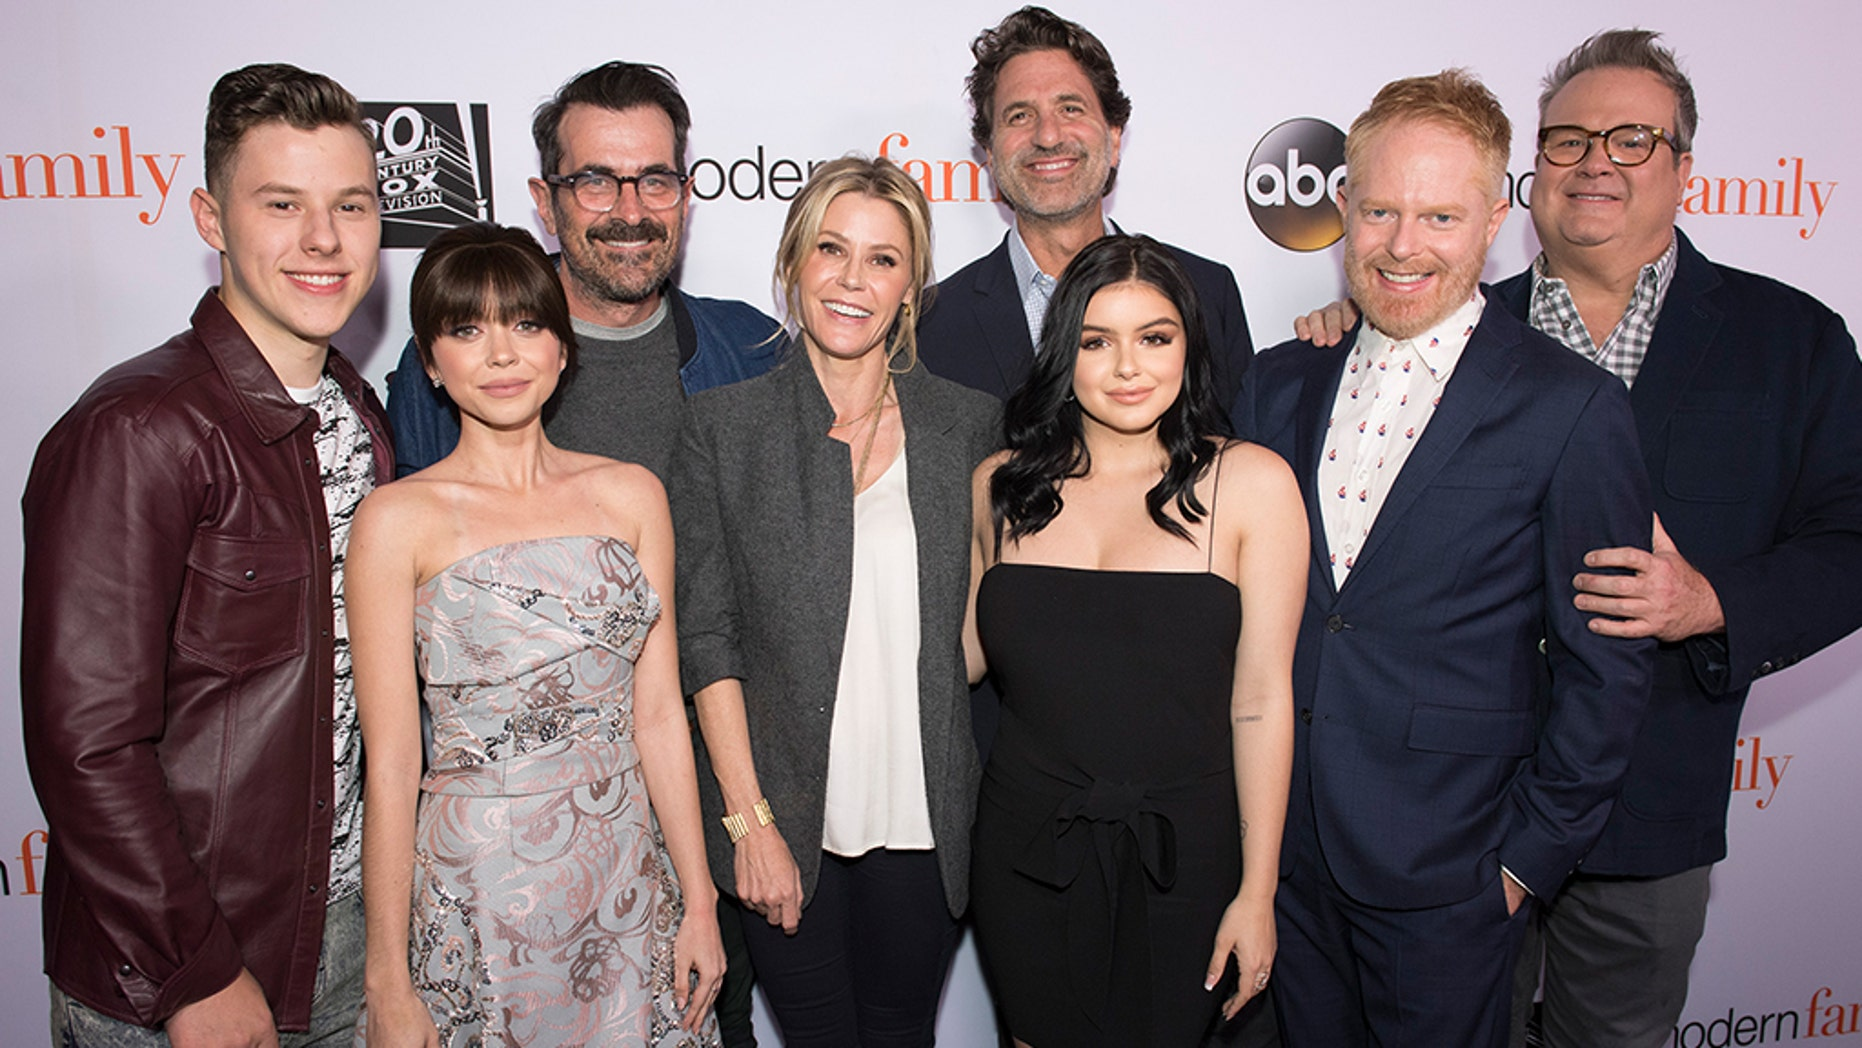 'Modern Family' finally reveals details on 'significant' character's death